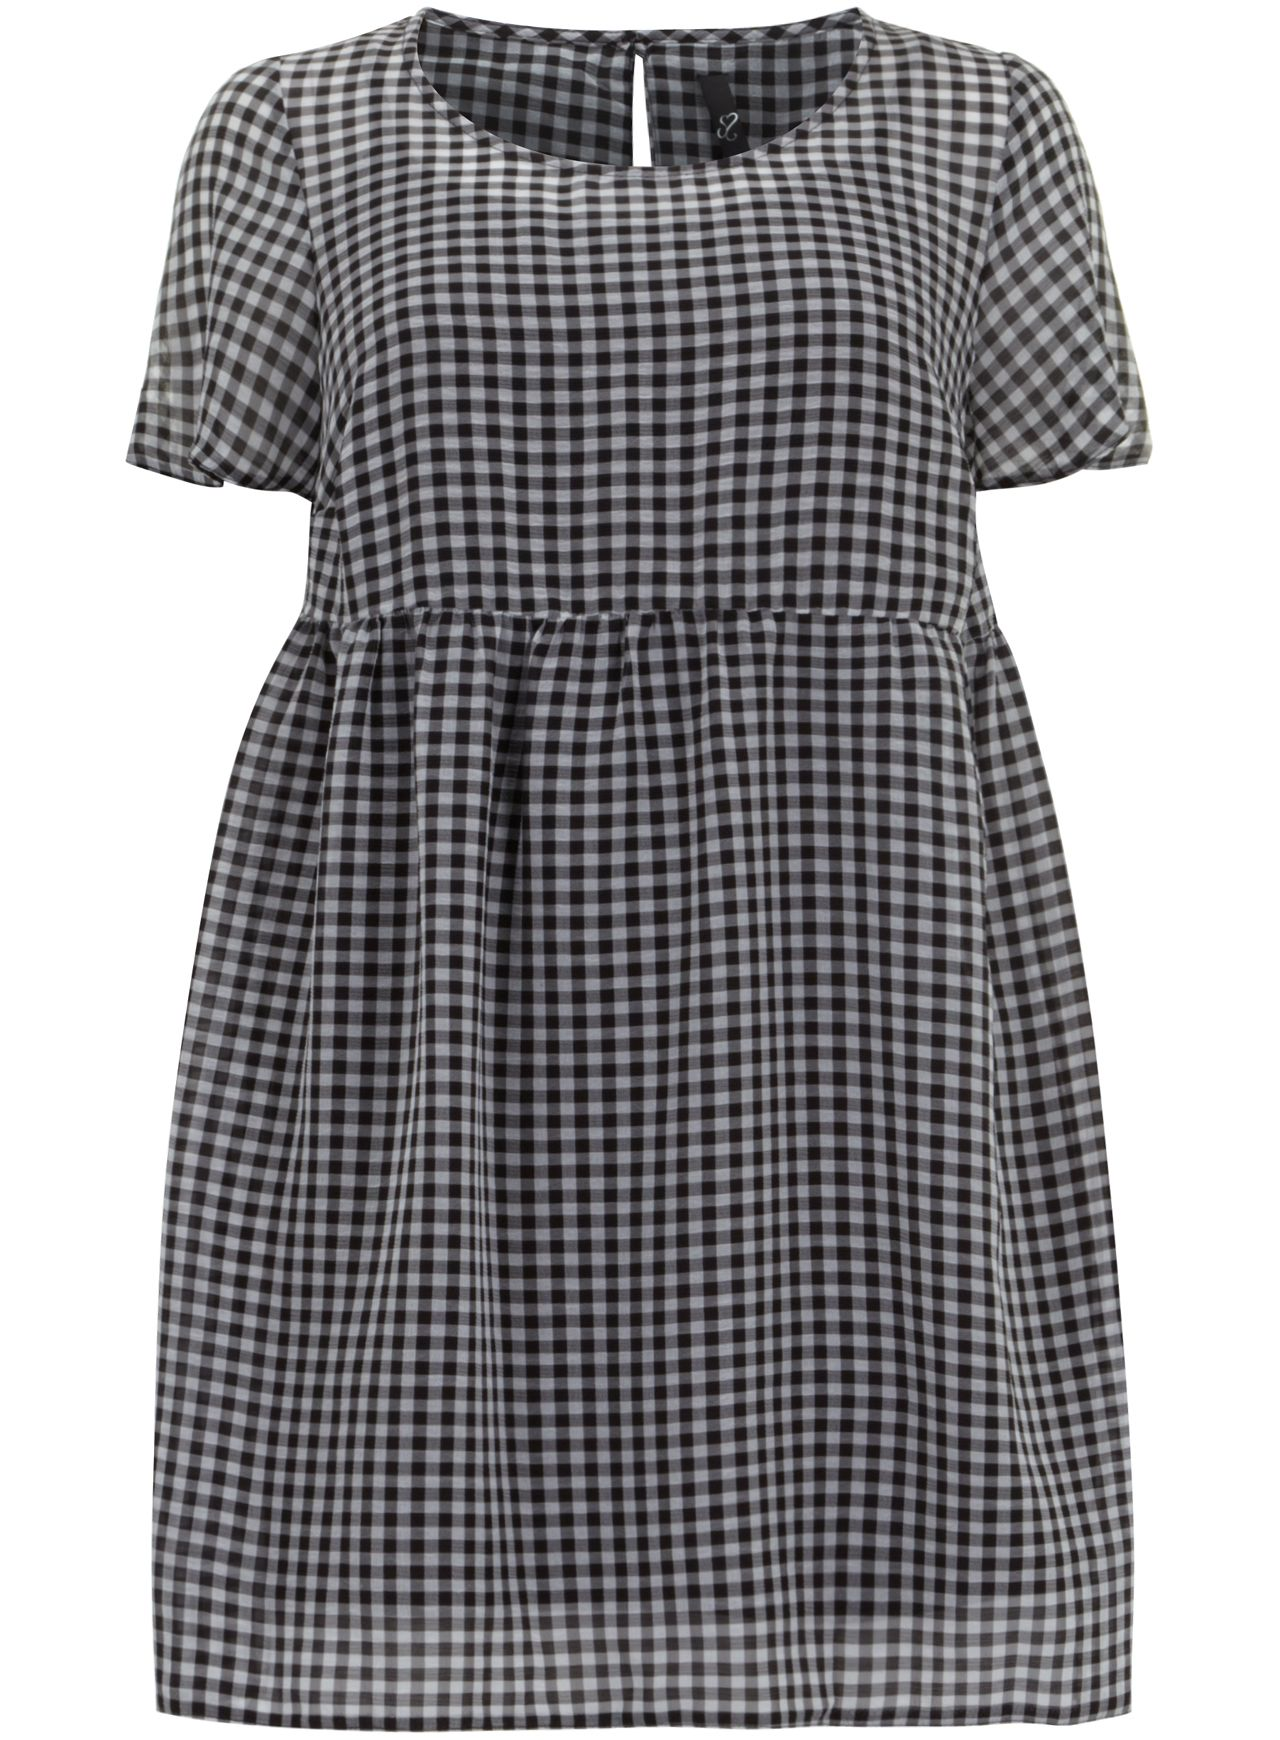 Black & White Check Smock Tunic Top